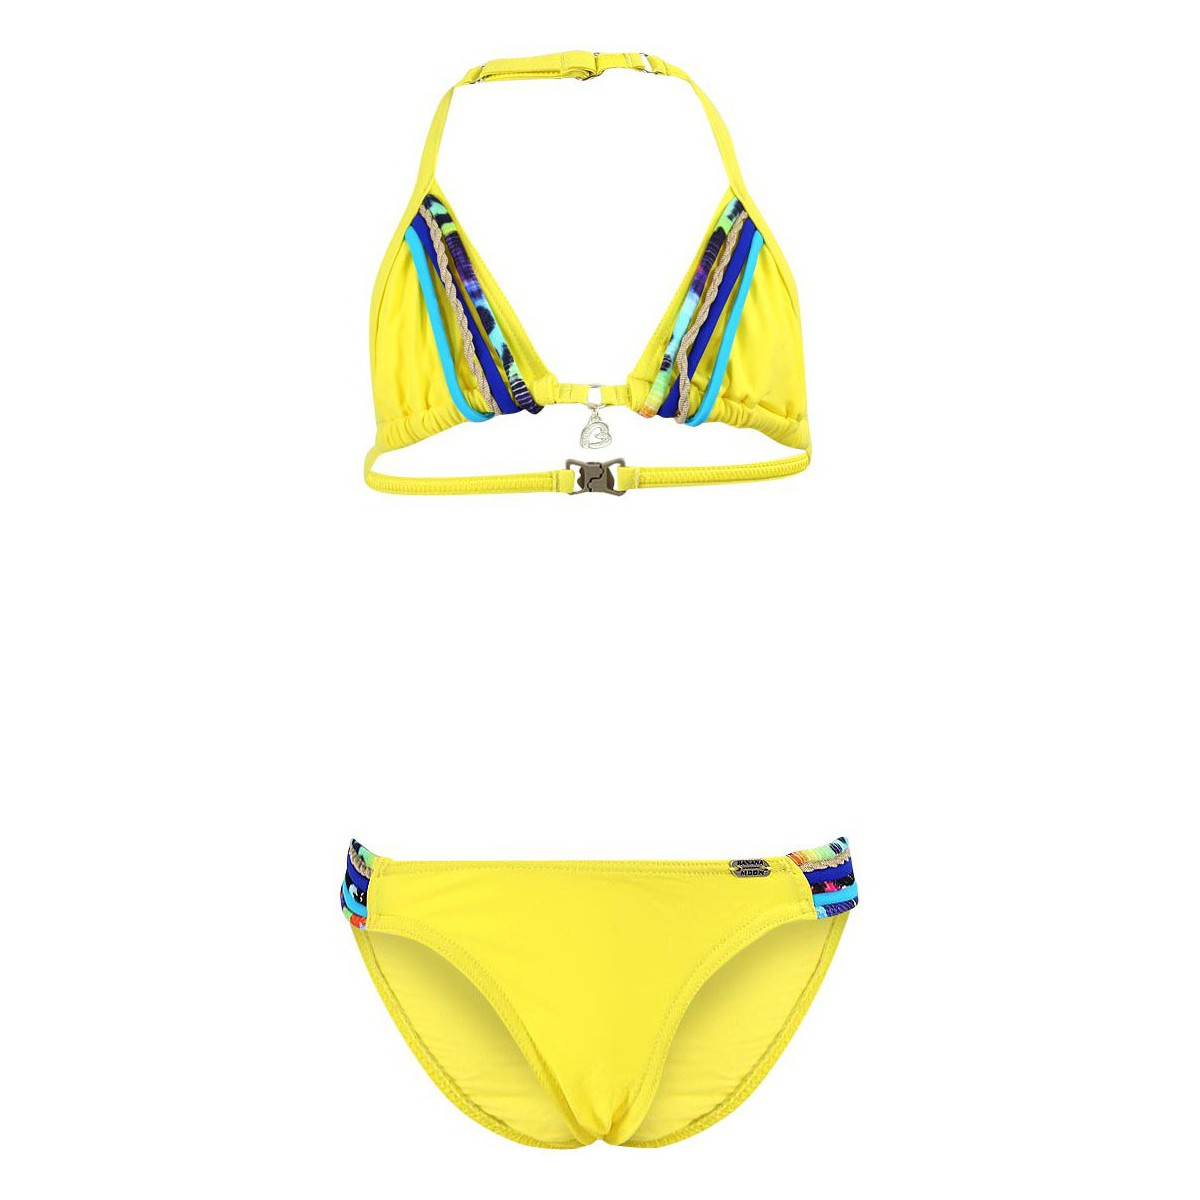 maillots de bain 2 pi ces banana moon maillot de bain enfant 2 pi ces spring mumba jaune jaune. Black Bedroom Furniture Sets. Home Design Ideas